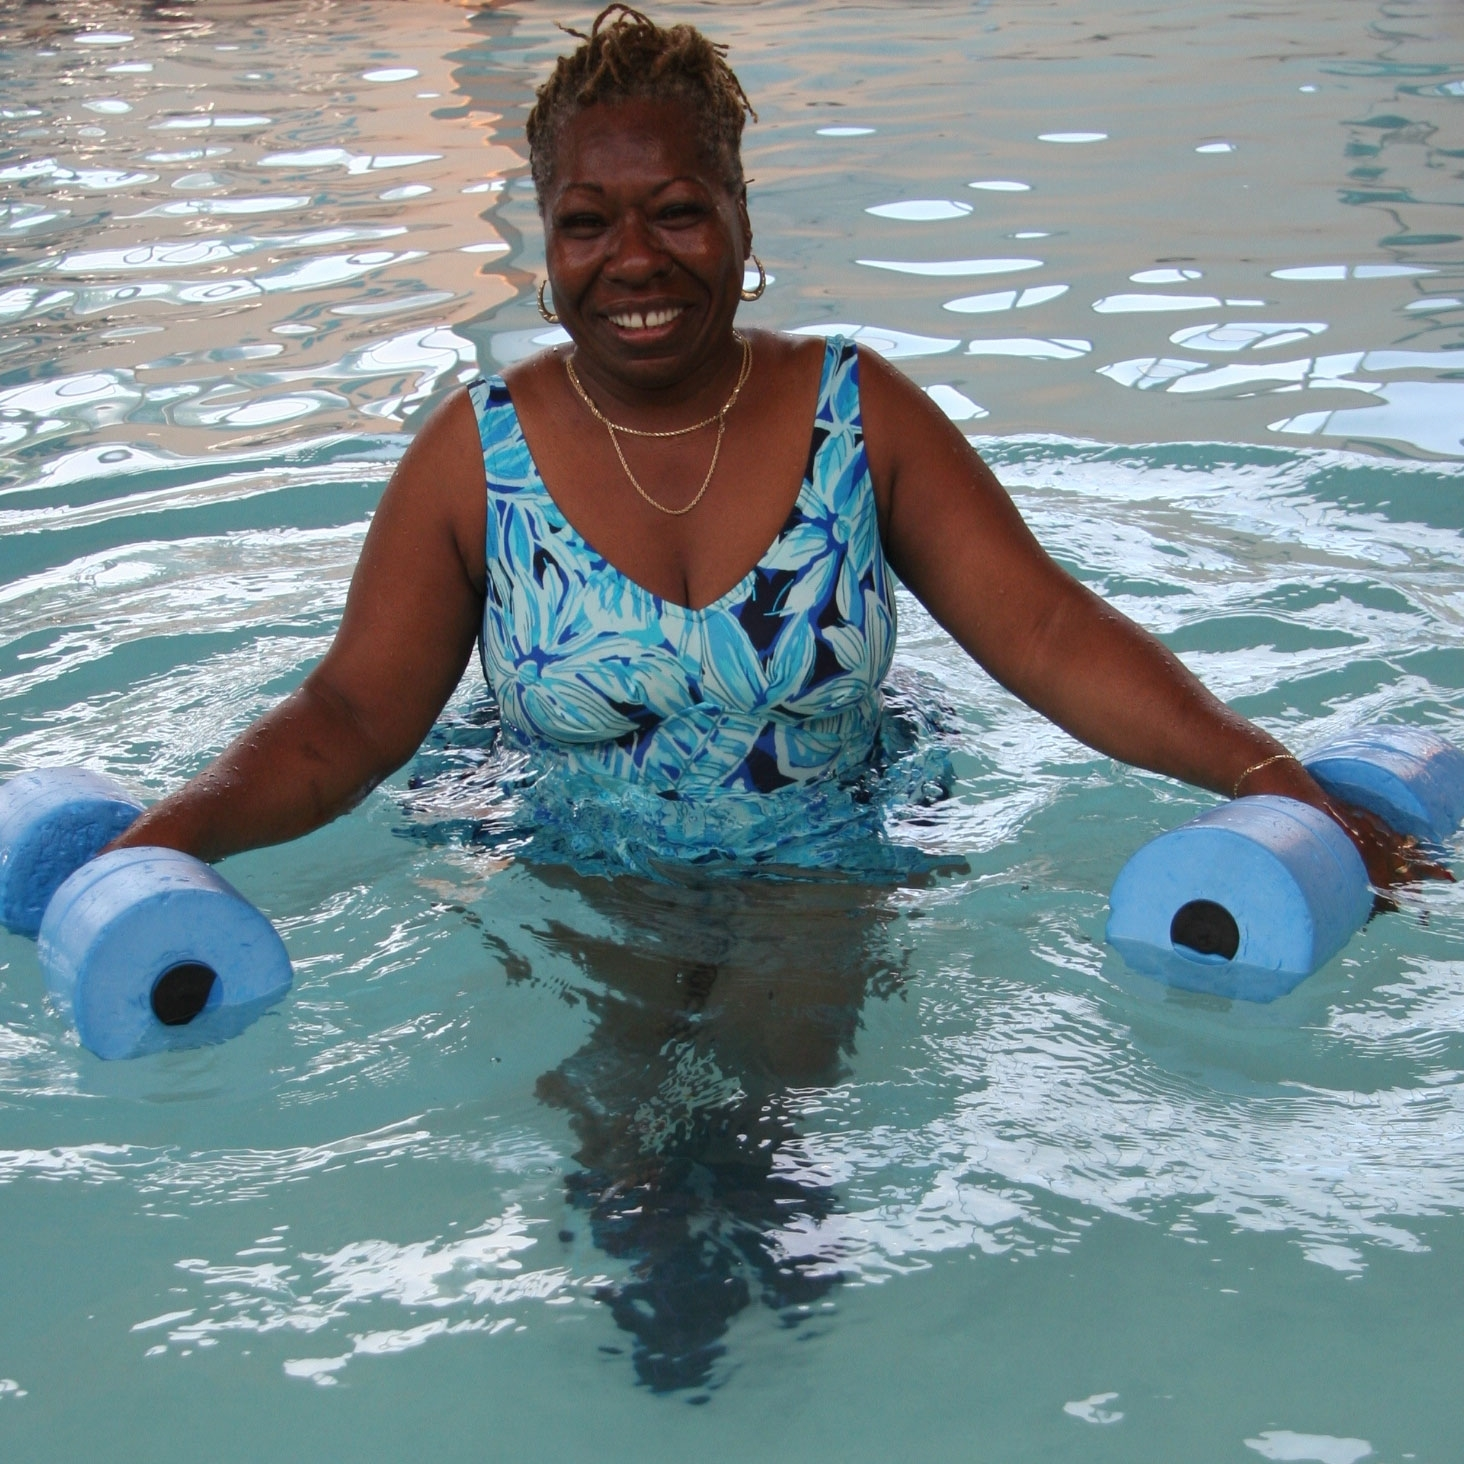 lady-in-pool2.jpg